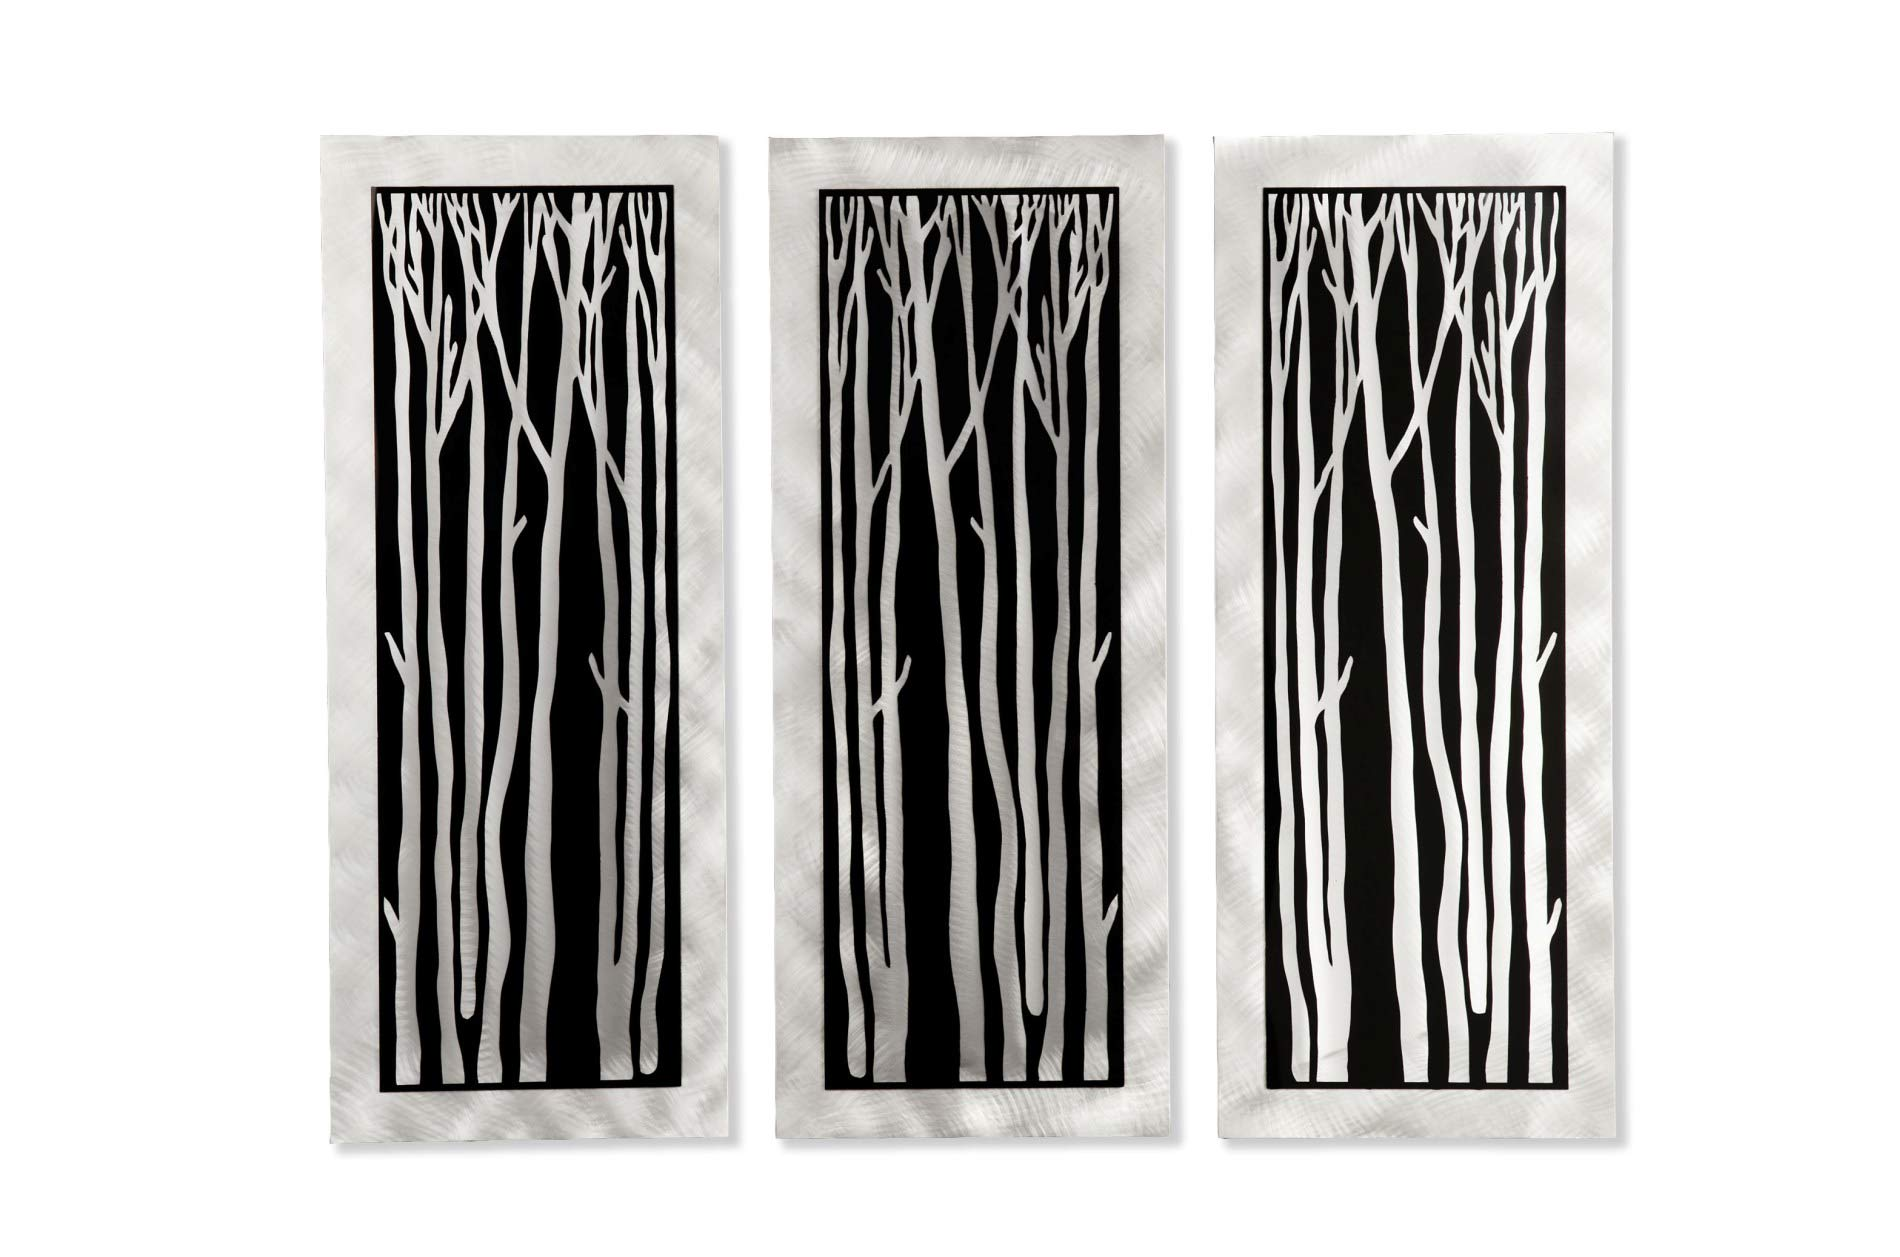 Jon Gilmore 'Silver Birch' 3-piece Wall Sculpture